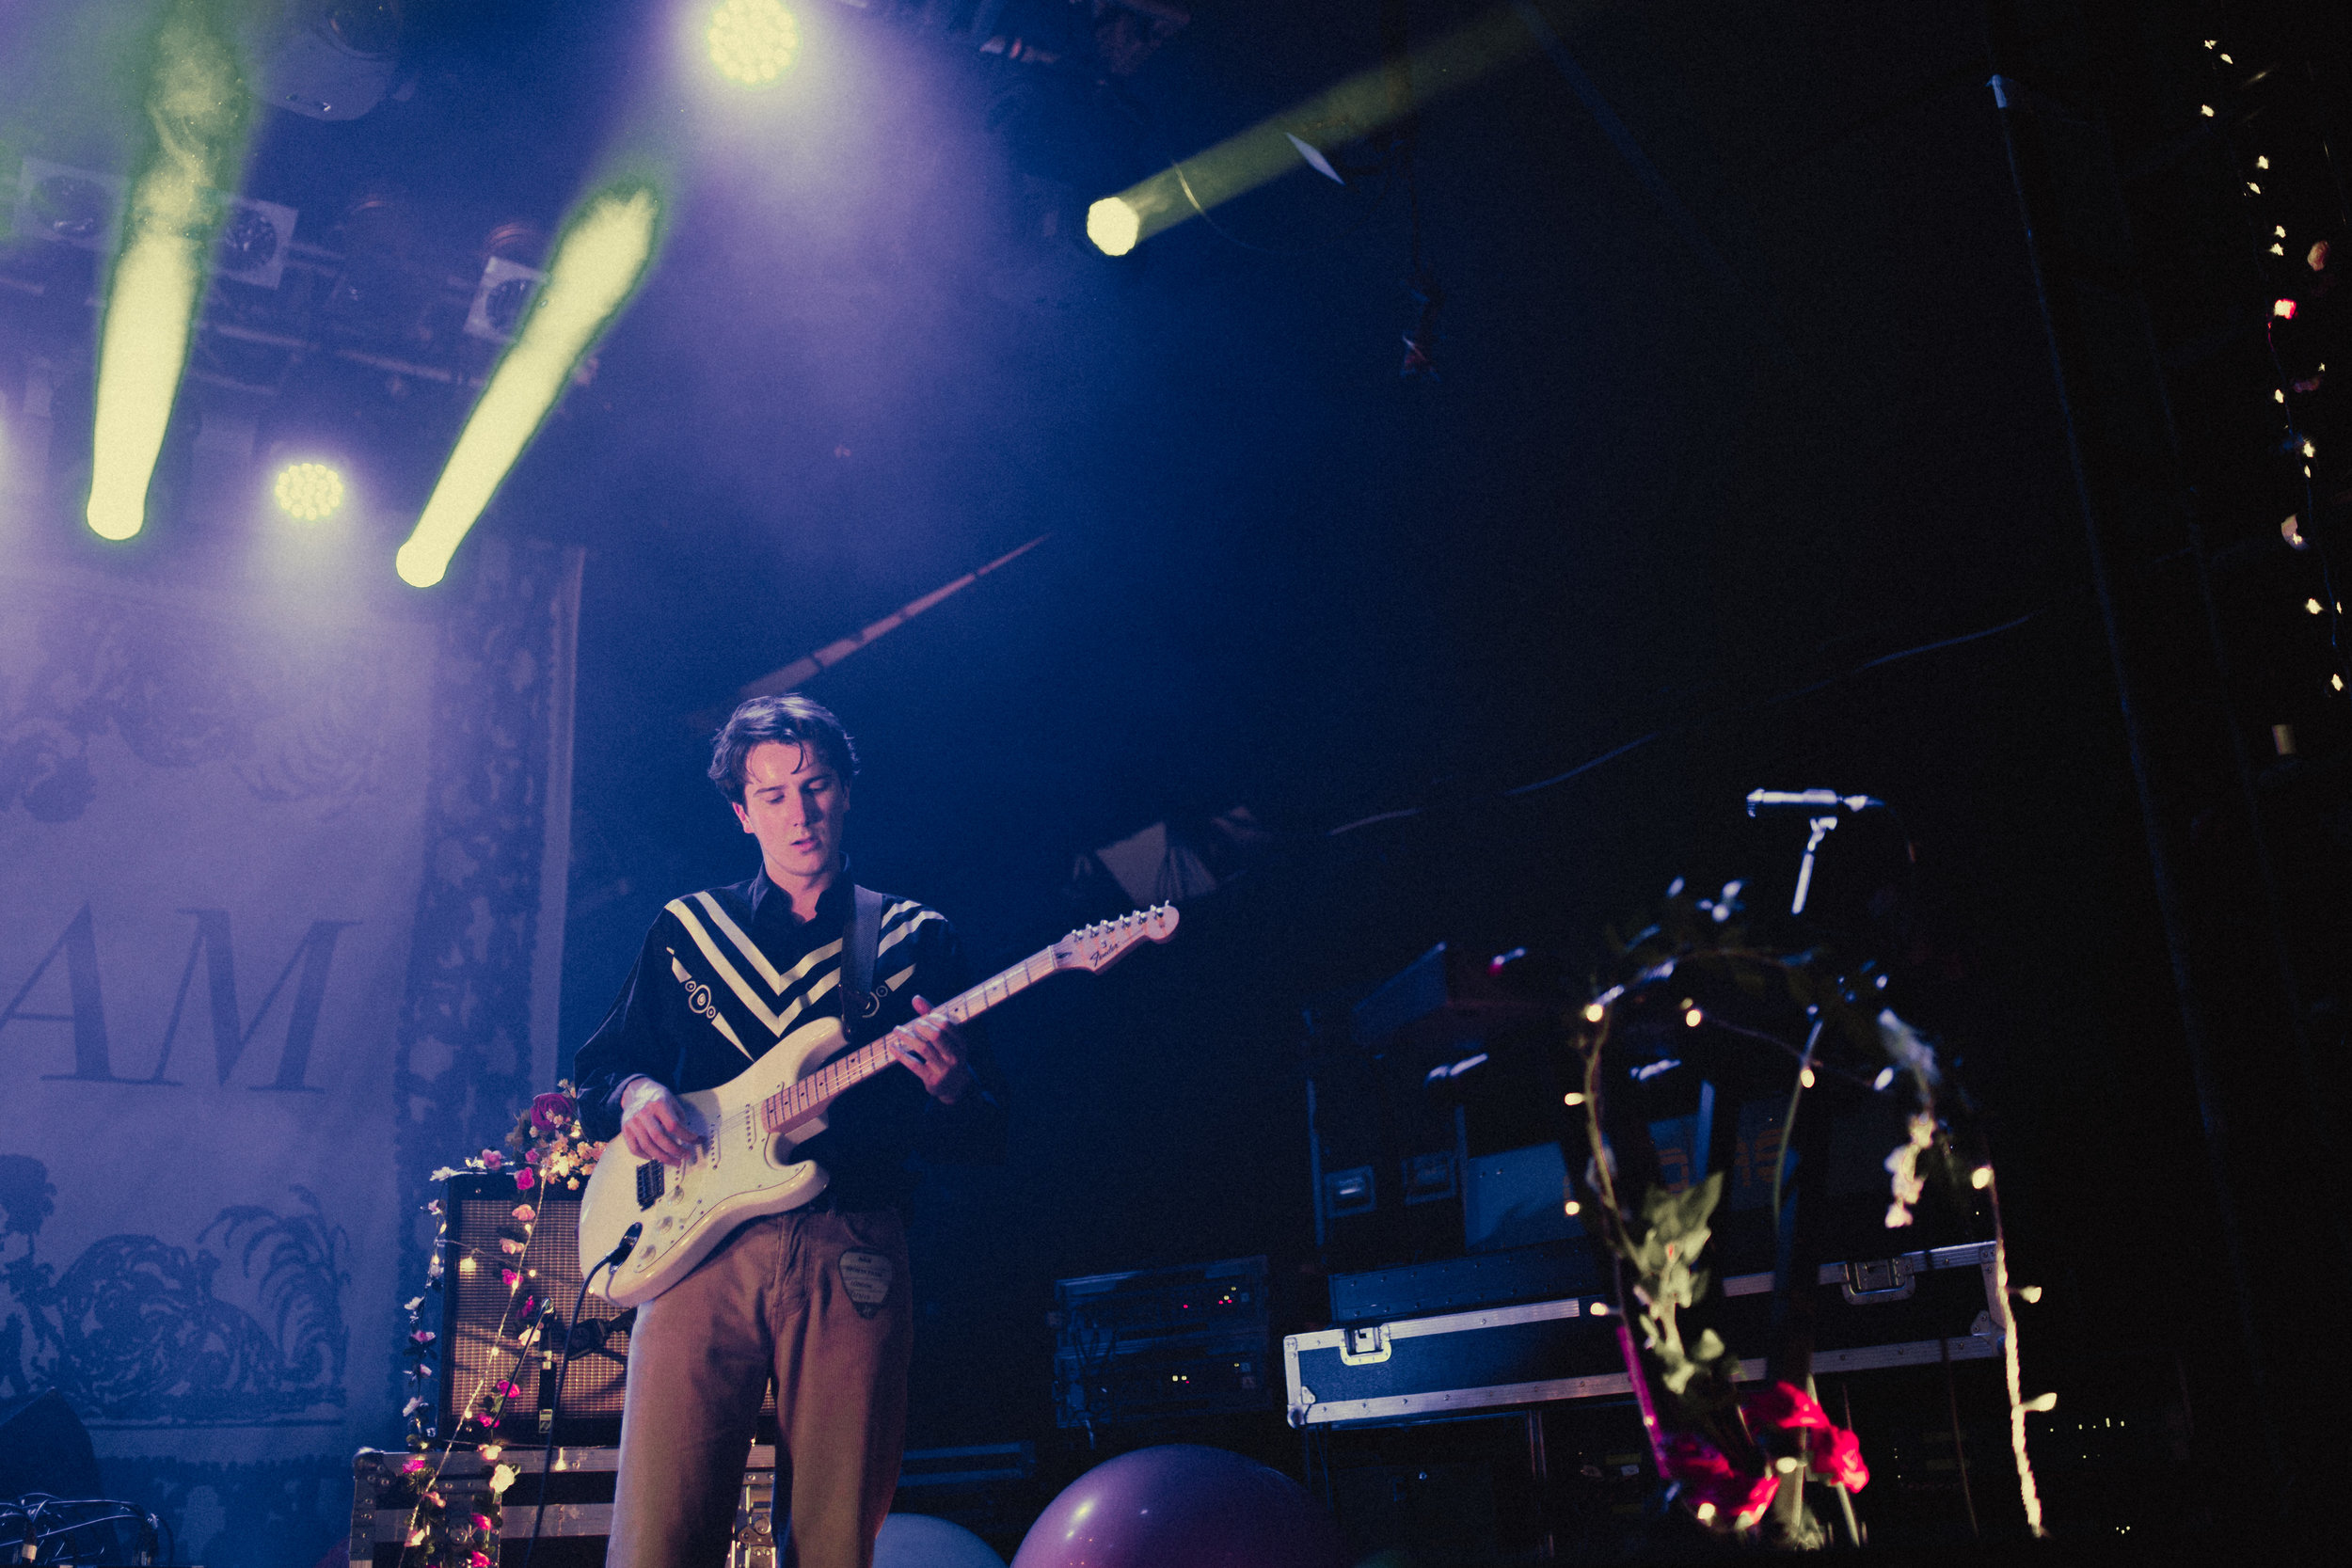 SPORTS TEAM PERFORMING AT LONDON'S ELECTRIC BALLROOM - 22.03.2019  PICTURE BY: RYAN LAURICOURT